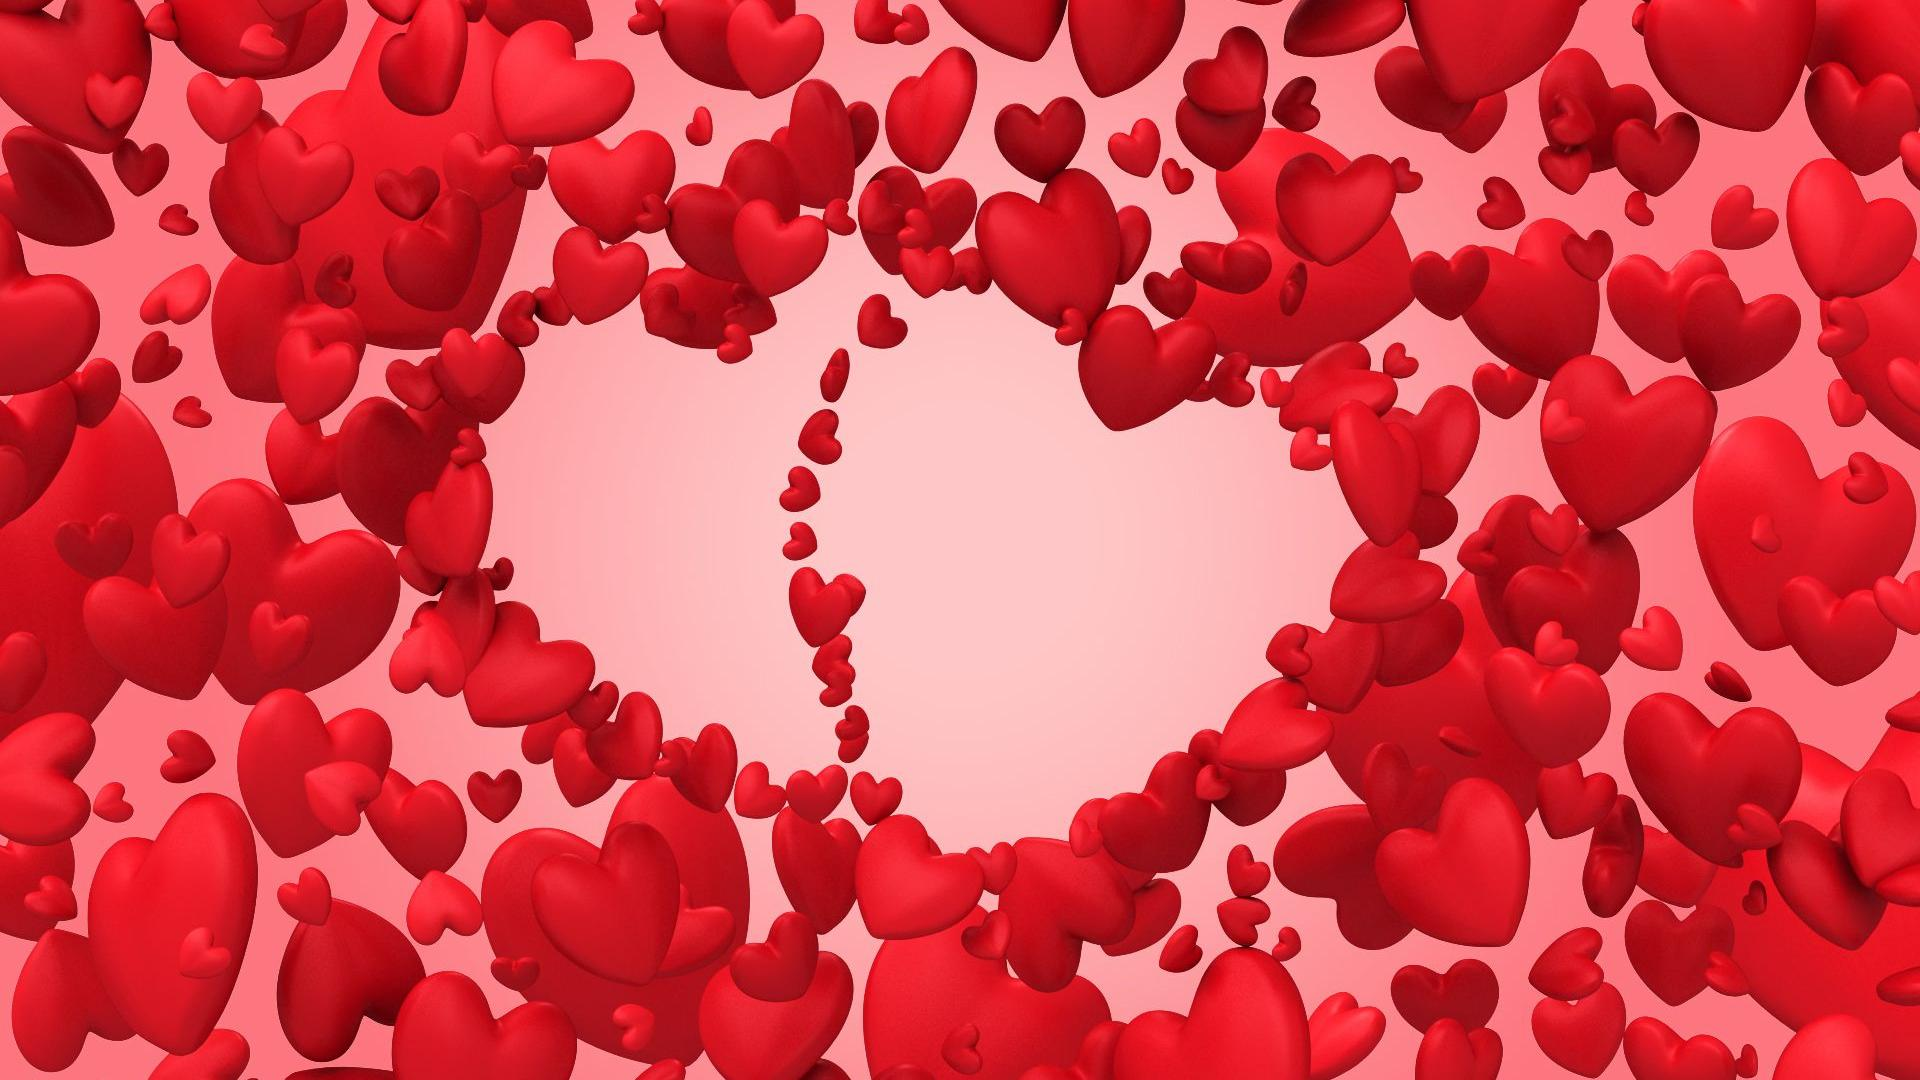 50 Disney Valentines Day Wallpapers   Download at WallpaperBro 1920x1080